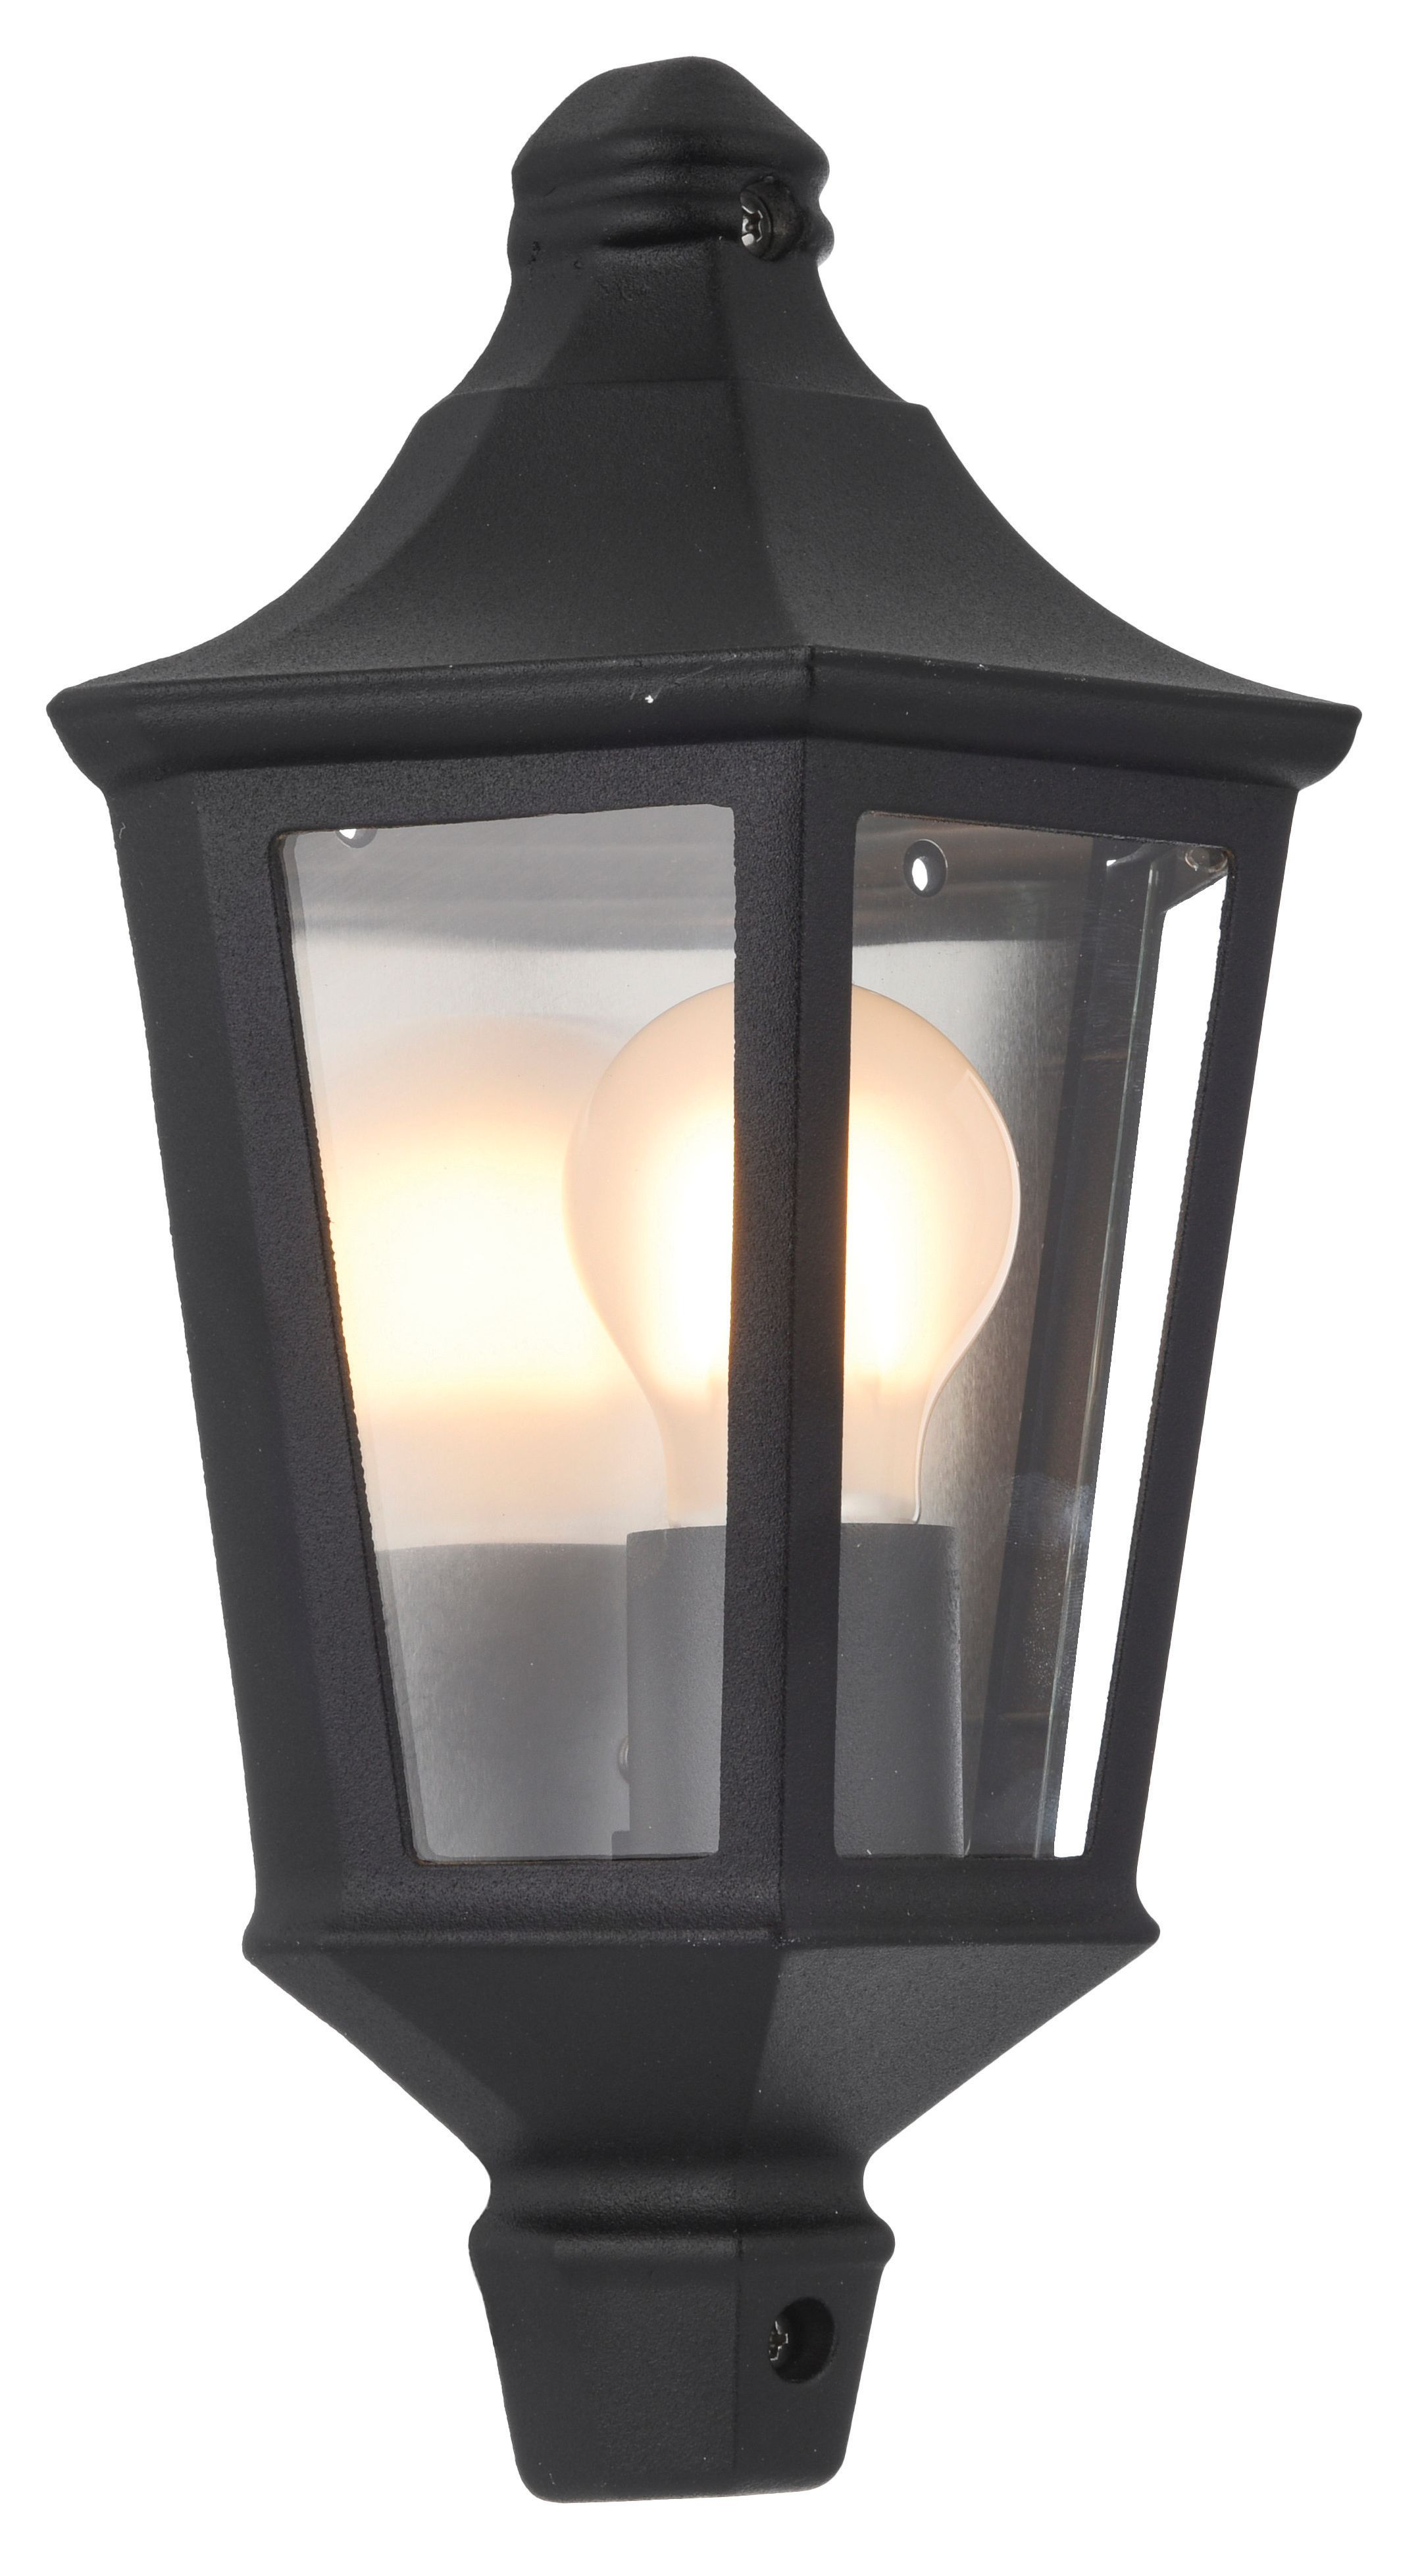 Outside Wall Lights Wickes : Wickes 60W Naples Half Lantern Black Wickes.co.uk